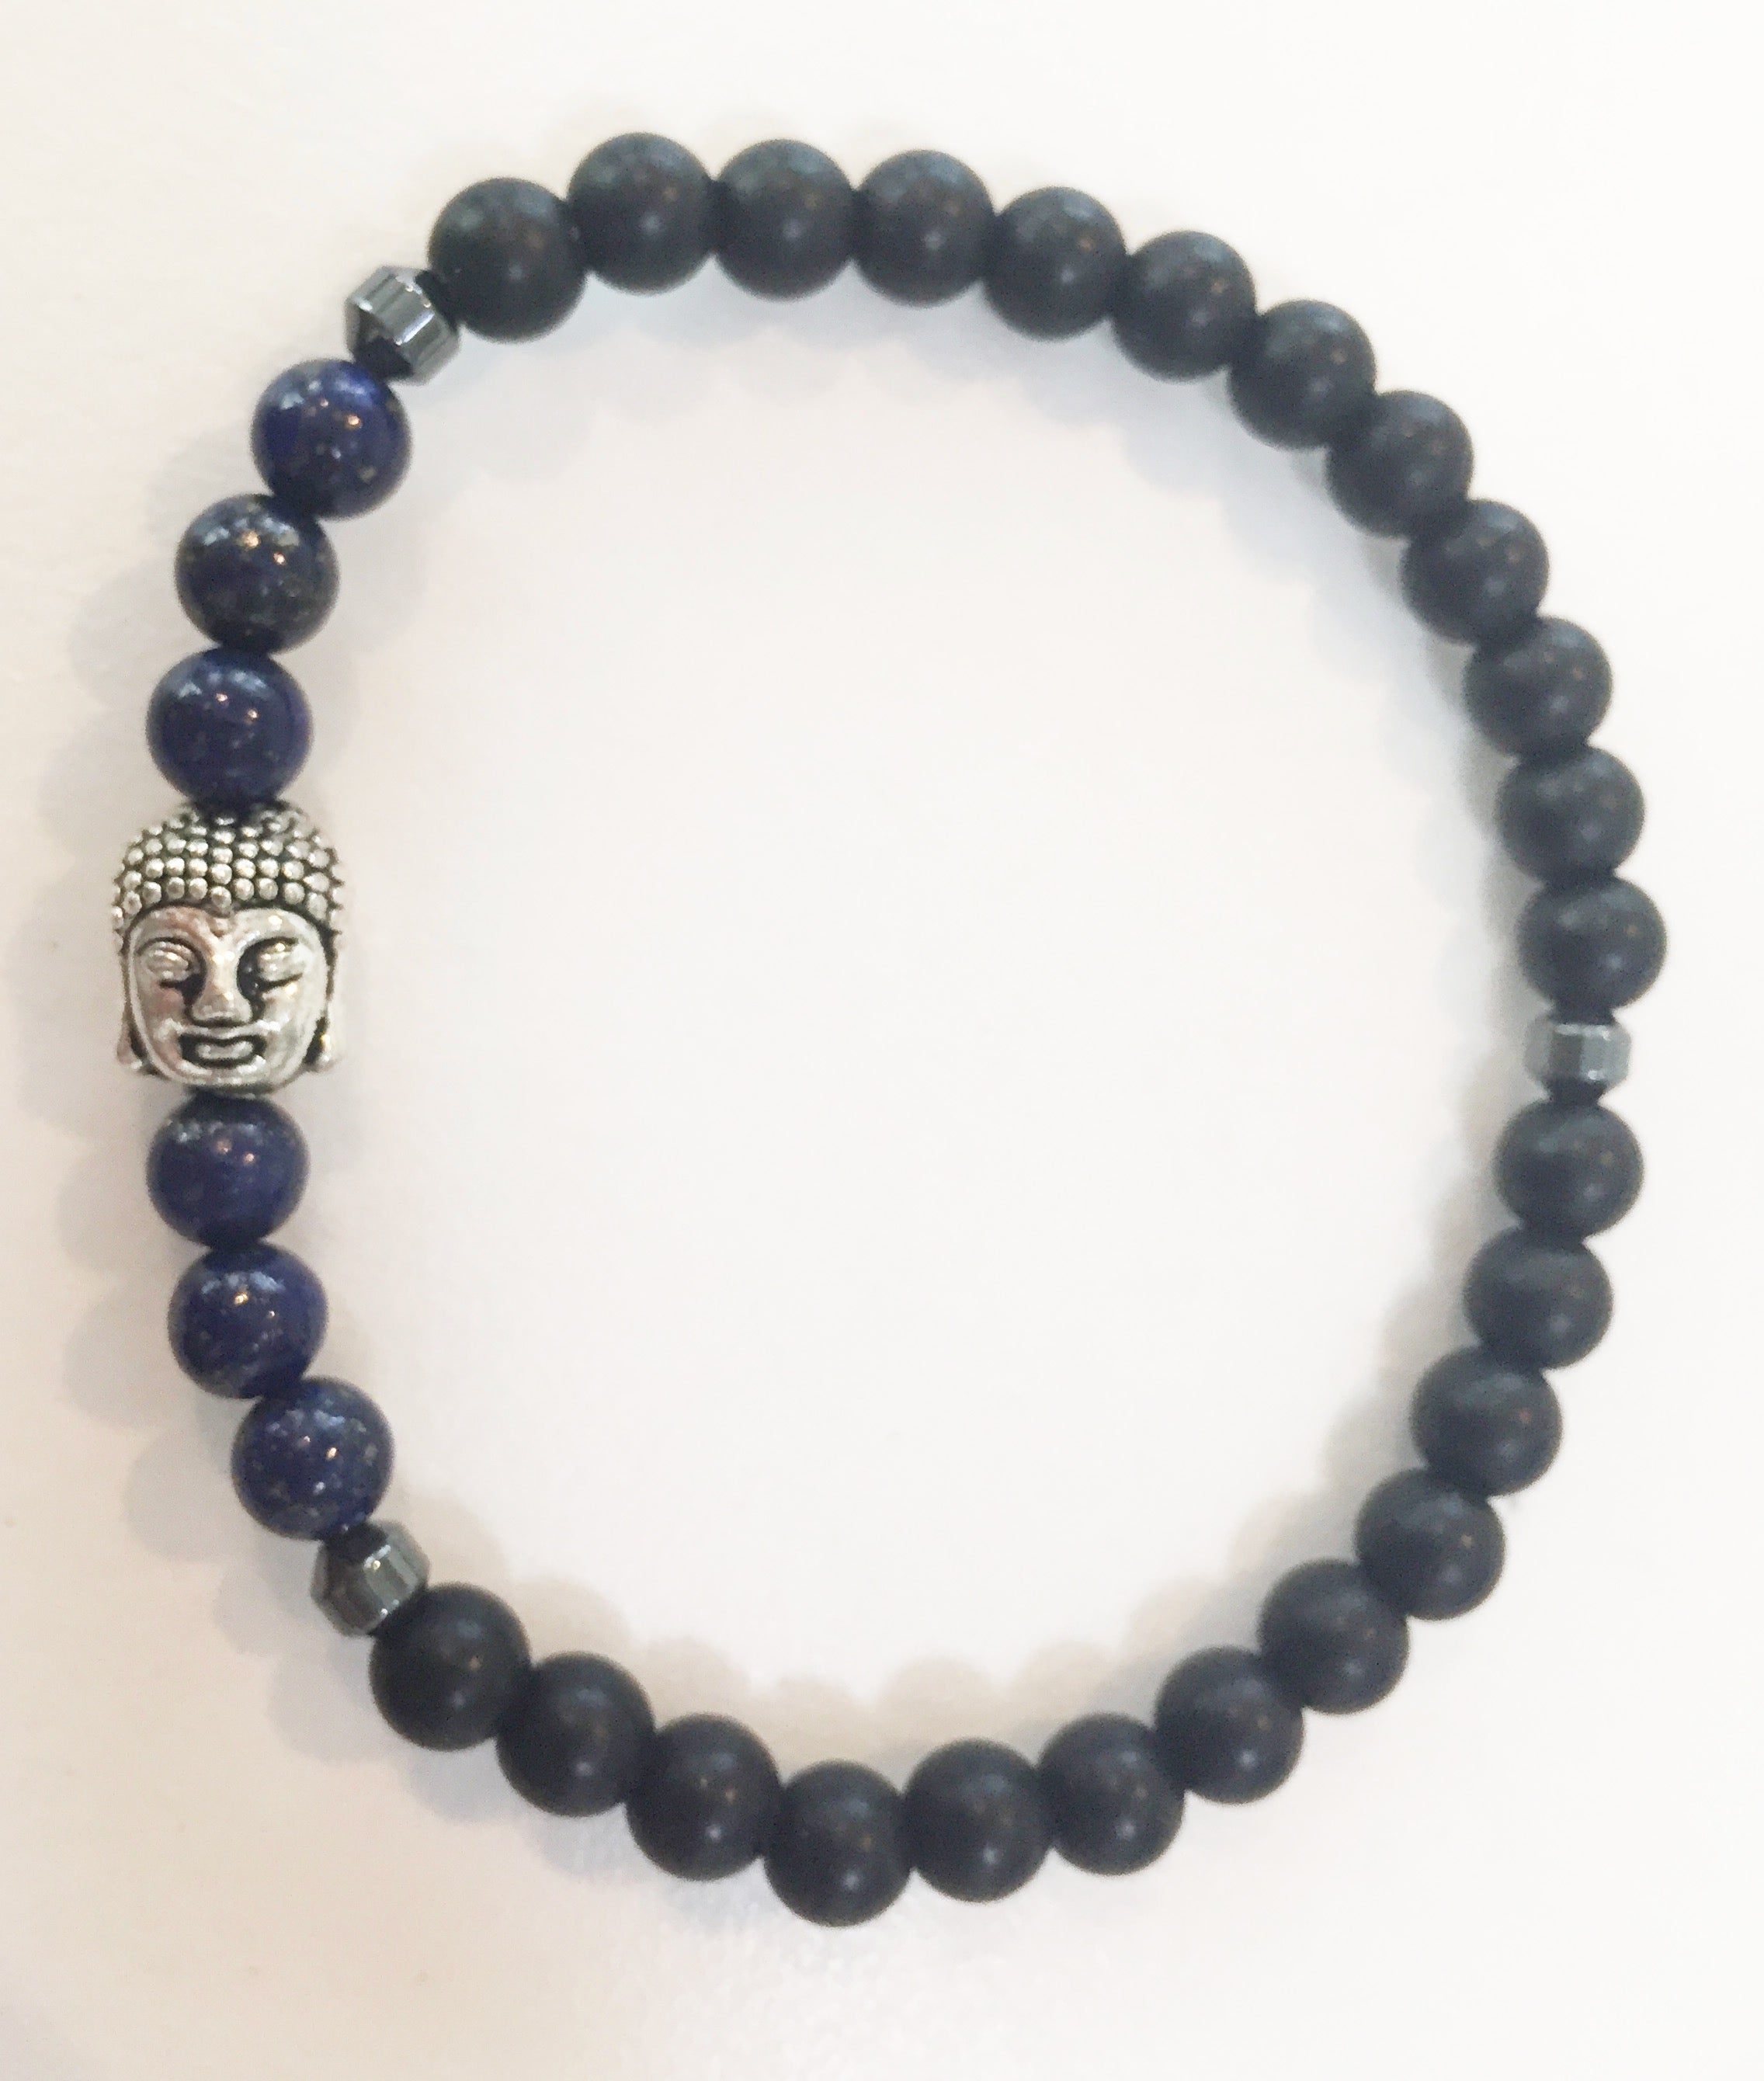 6mm Matte Obsidian & Lapis Stretch Bracelet with Buddha Head